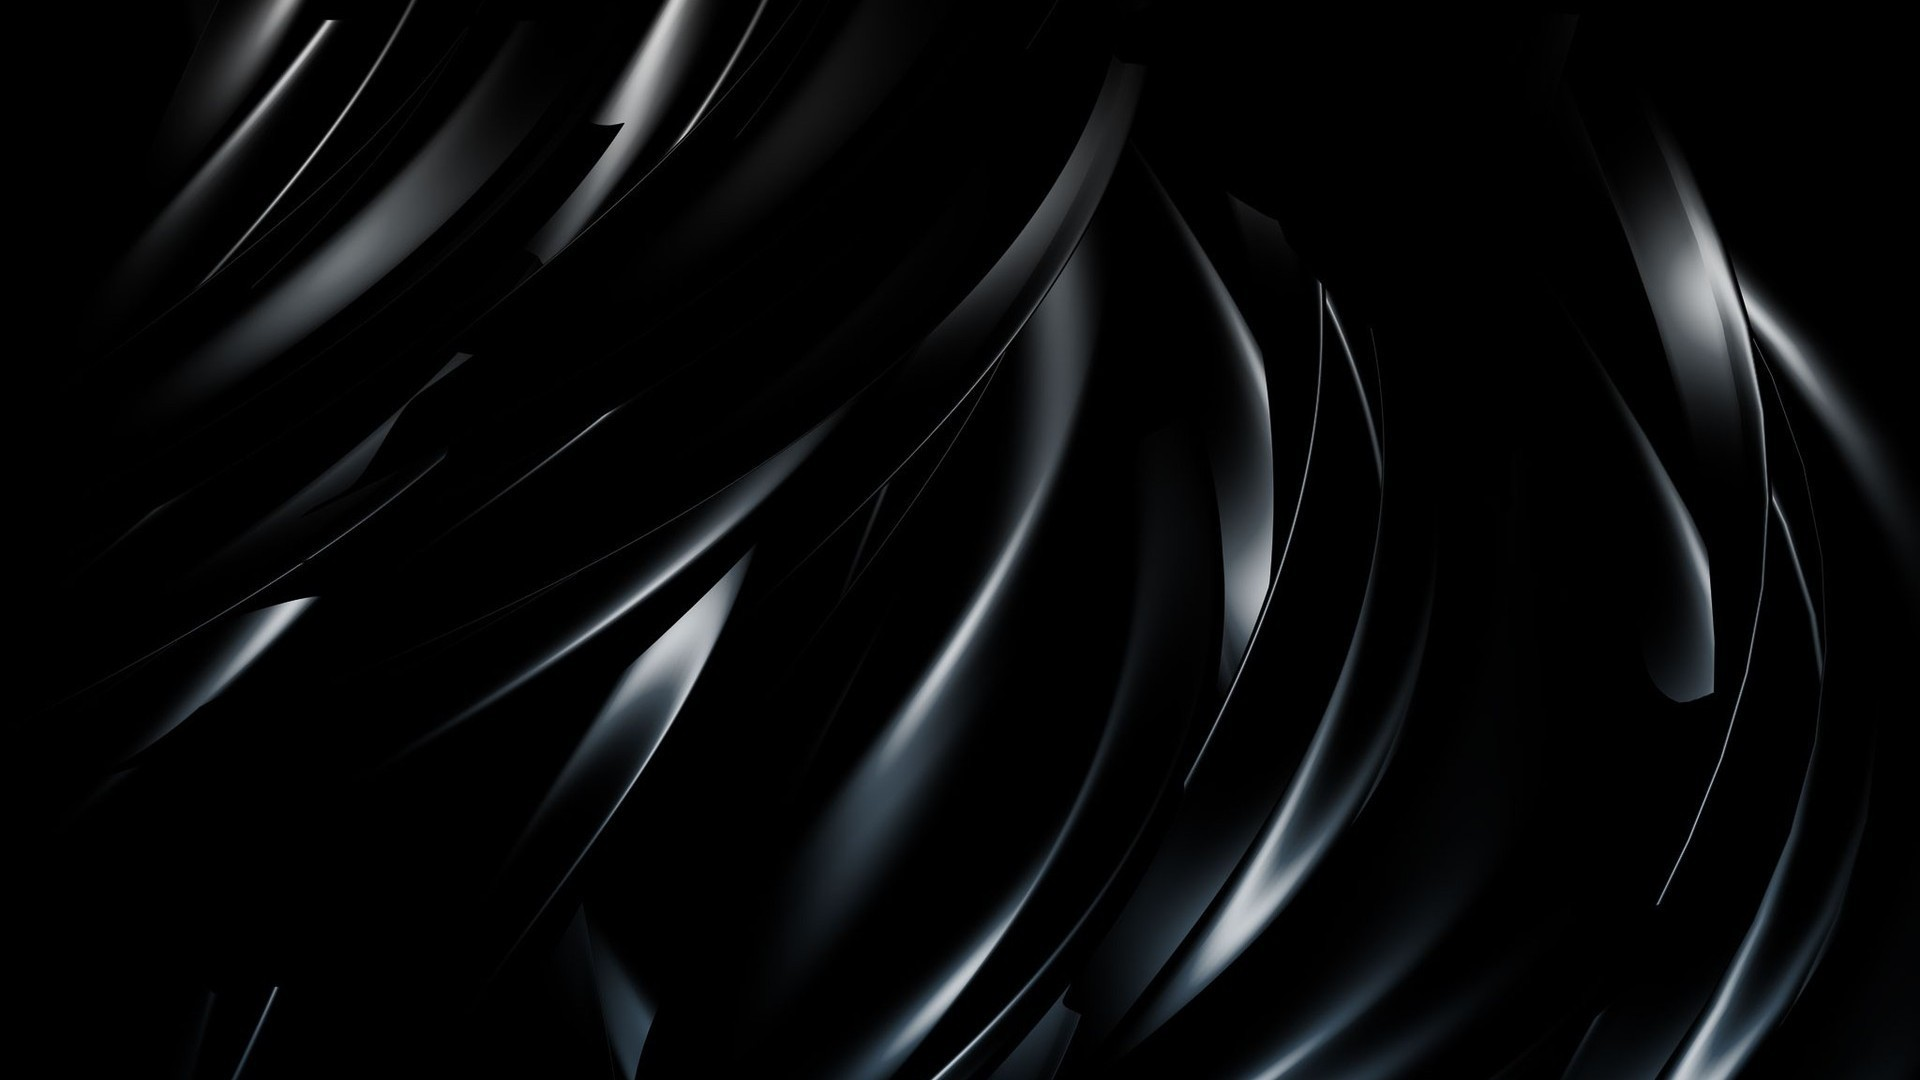 Collection of Black Wallpaper Abstract on HDWallpapers Wallpapers Abstract  Black Wallpapers). Dark Wallpaper …